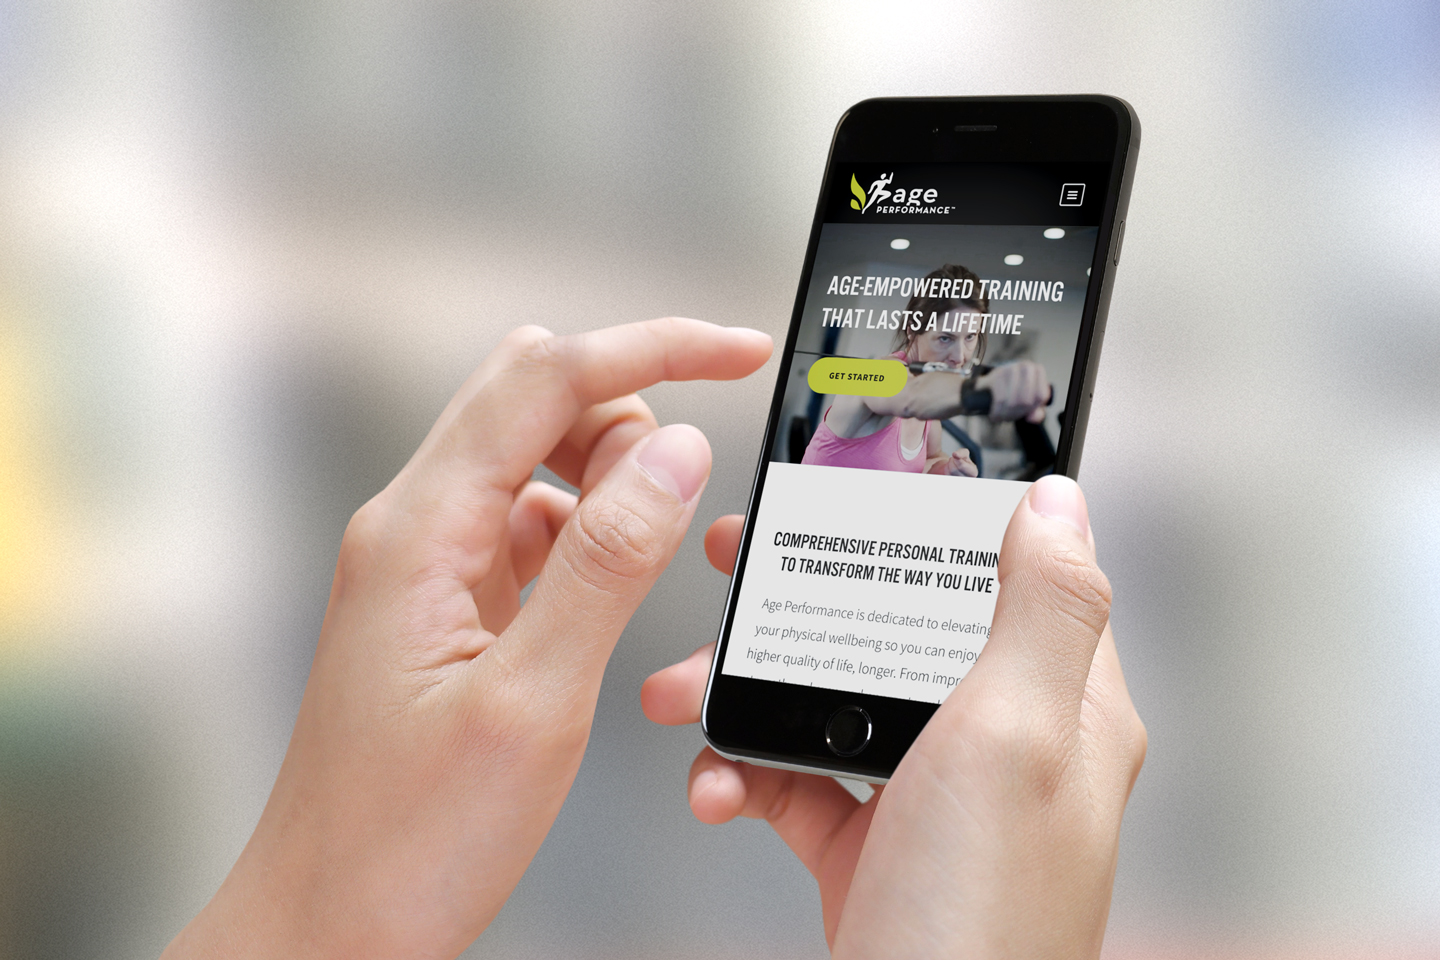 age performance website in a mobile phone